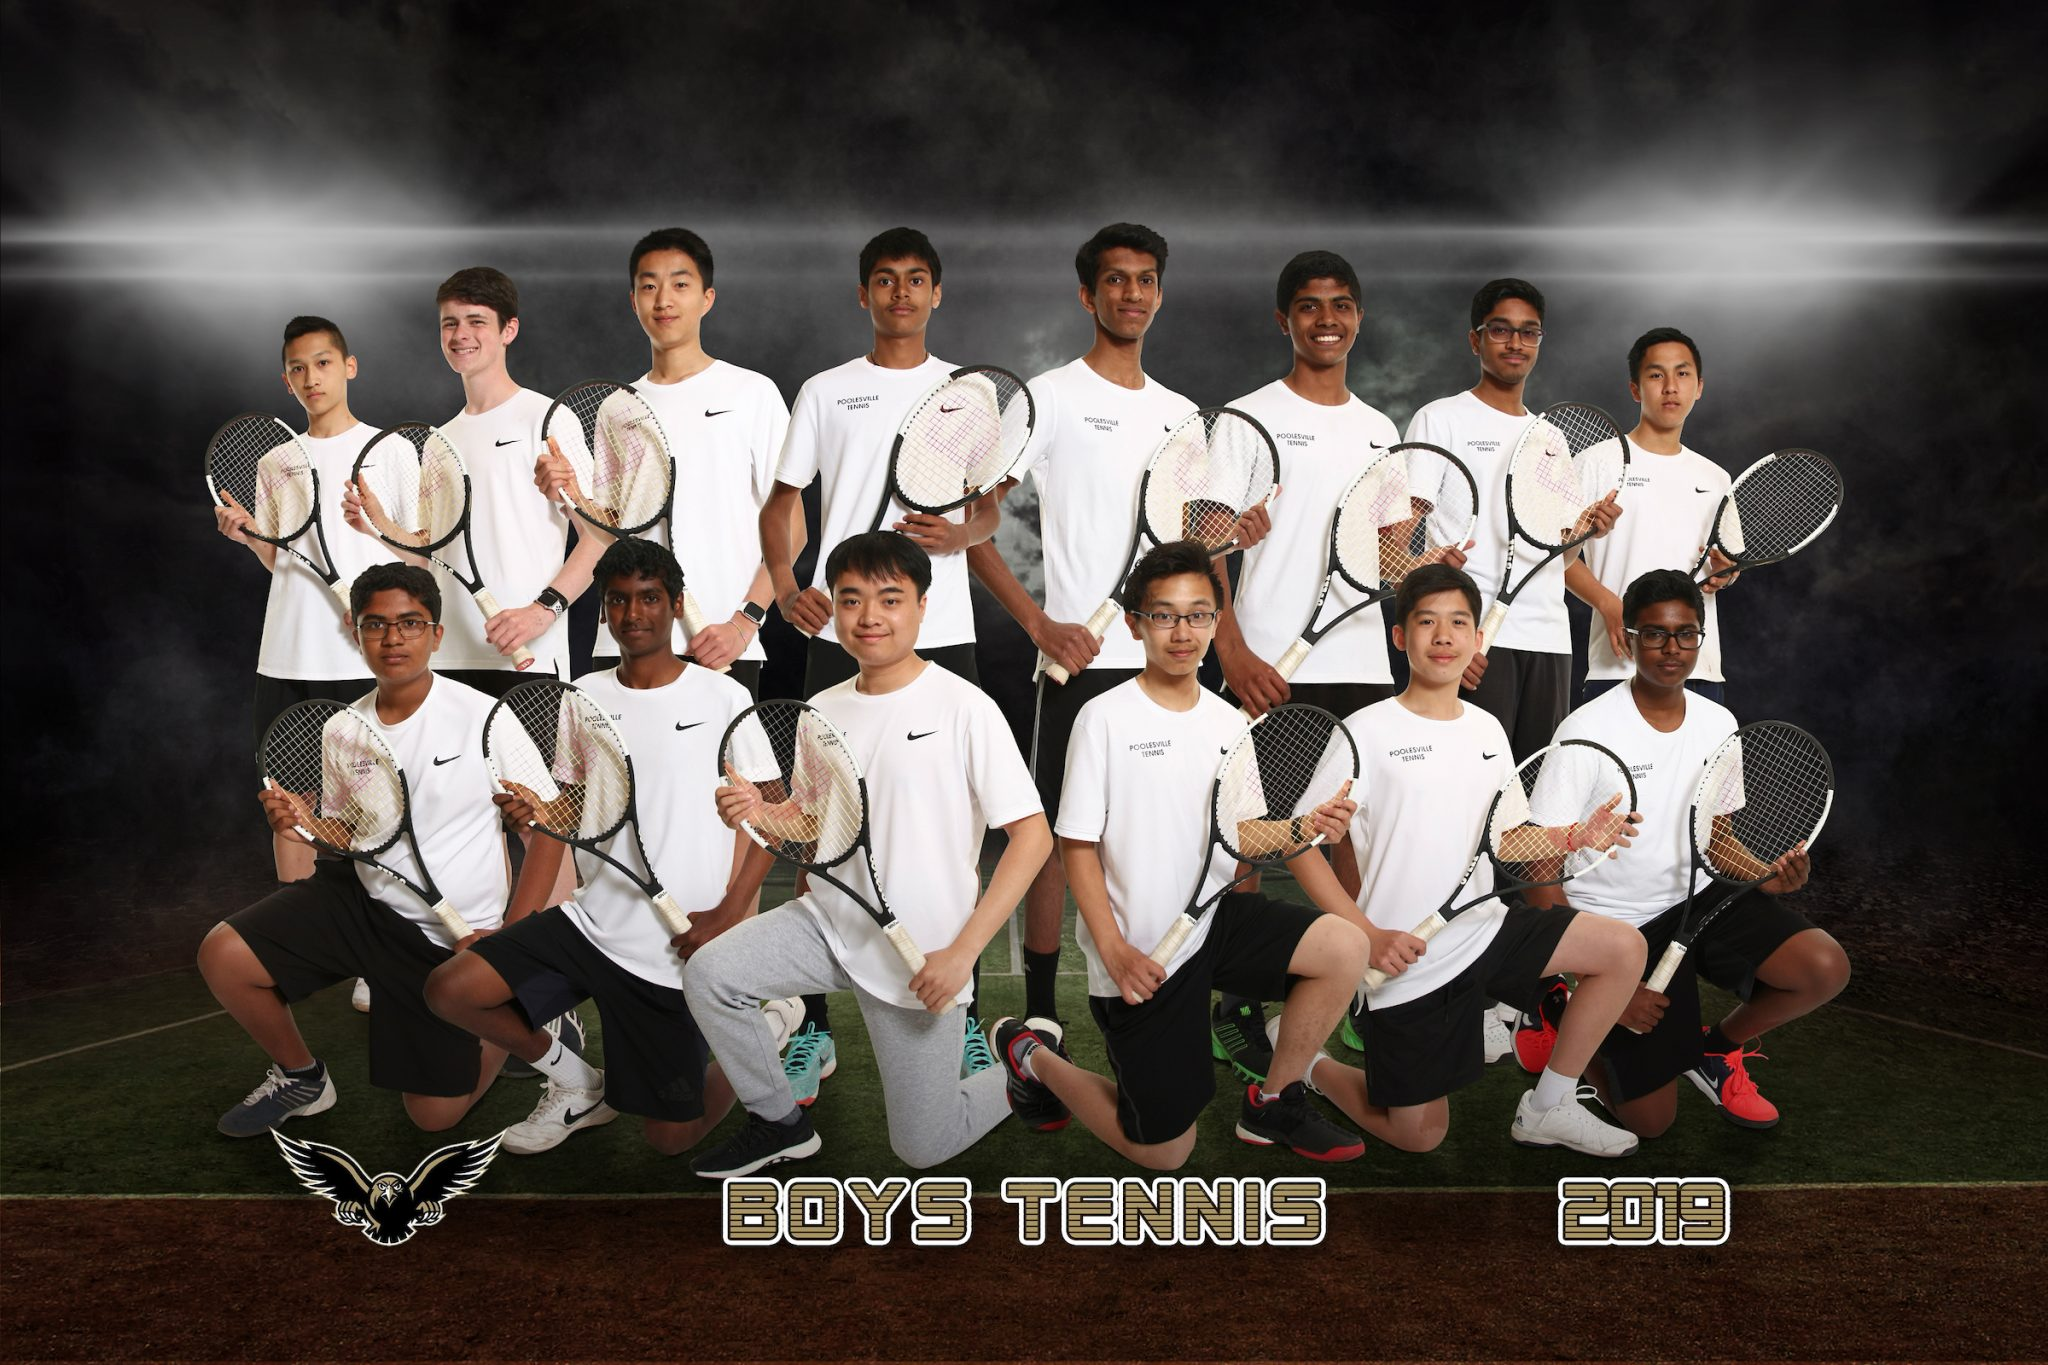 boys tennis team picture